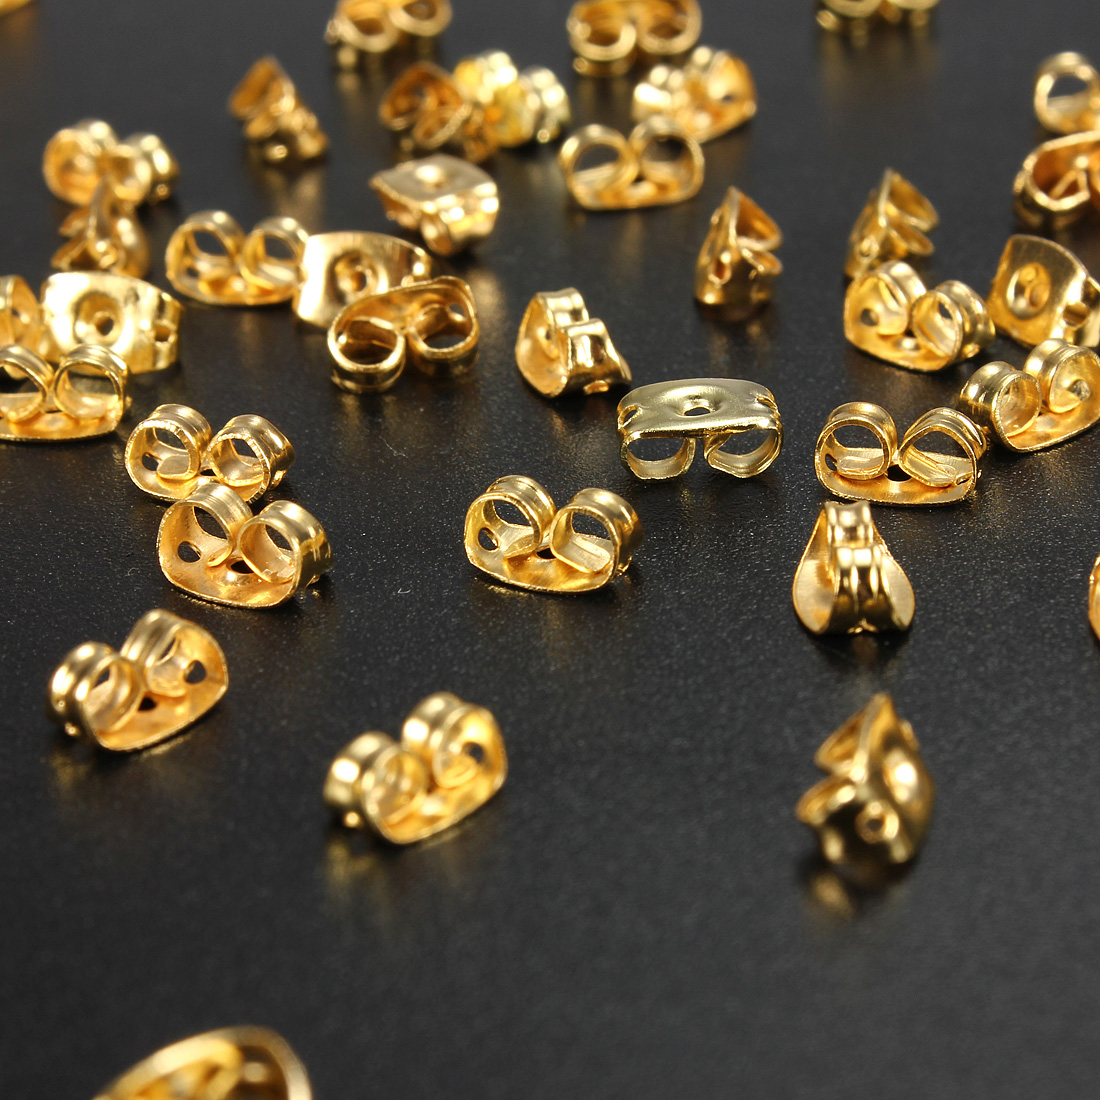 Image Is Loading Whole 50pcs Gold Plated Erfly Earring Backs Stopper